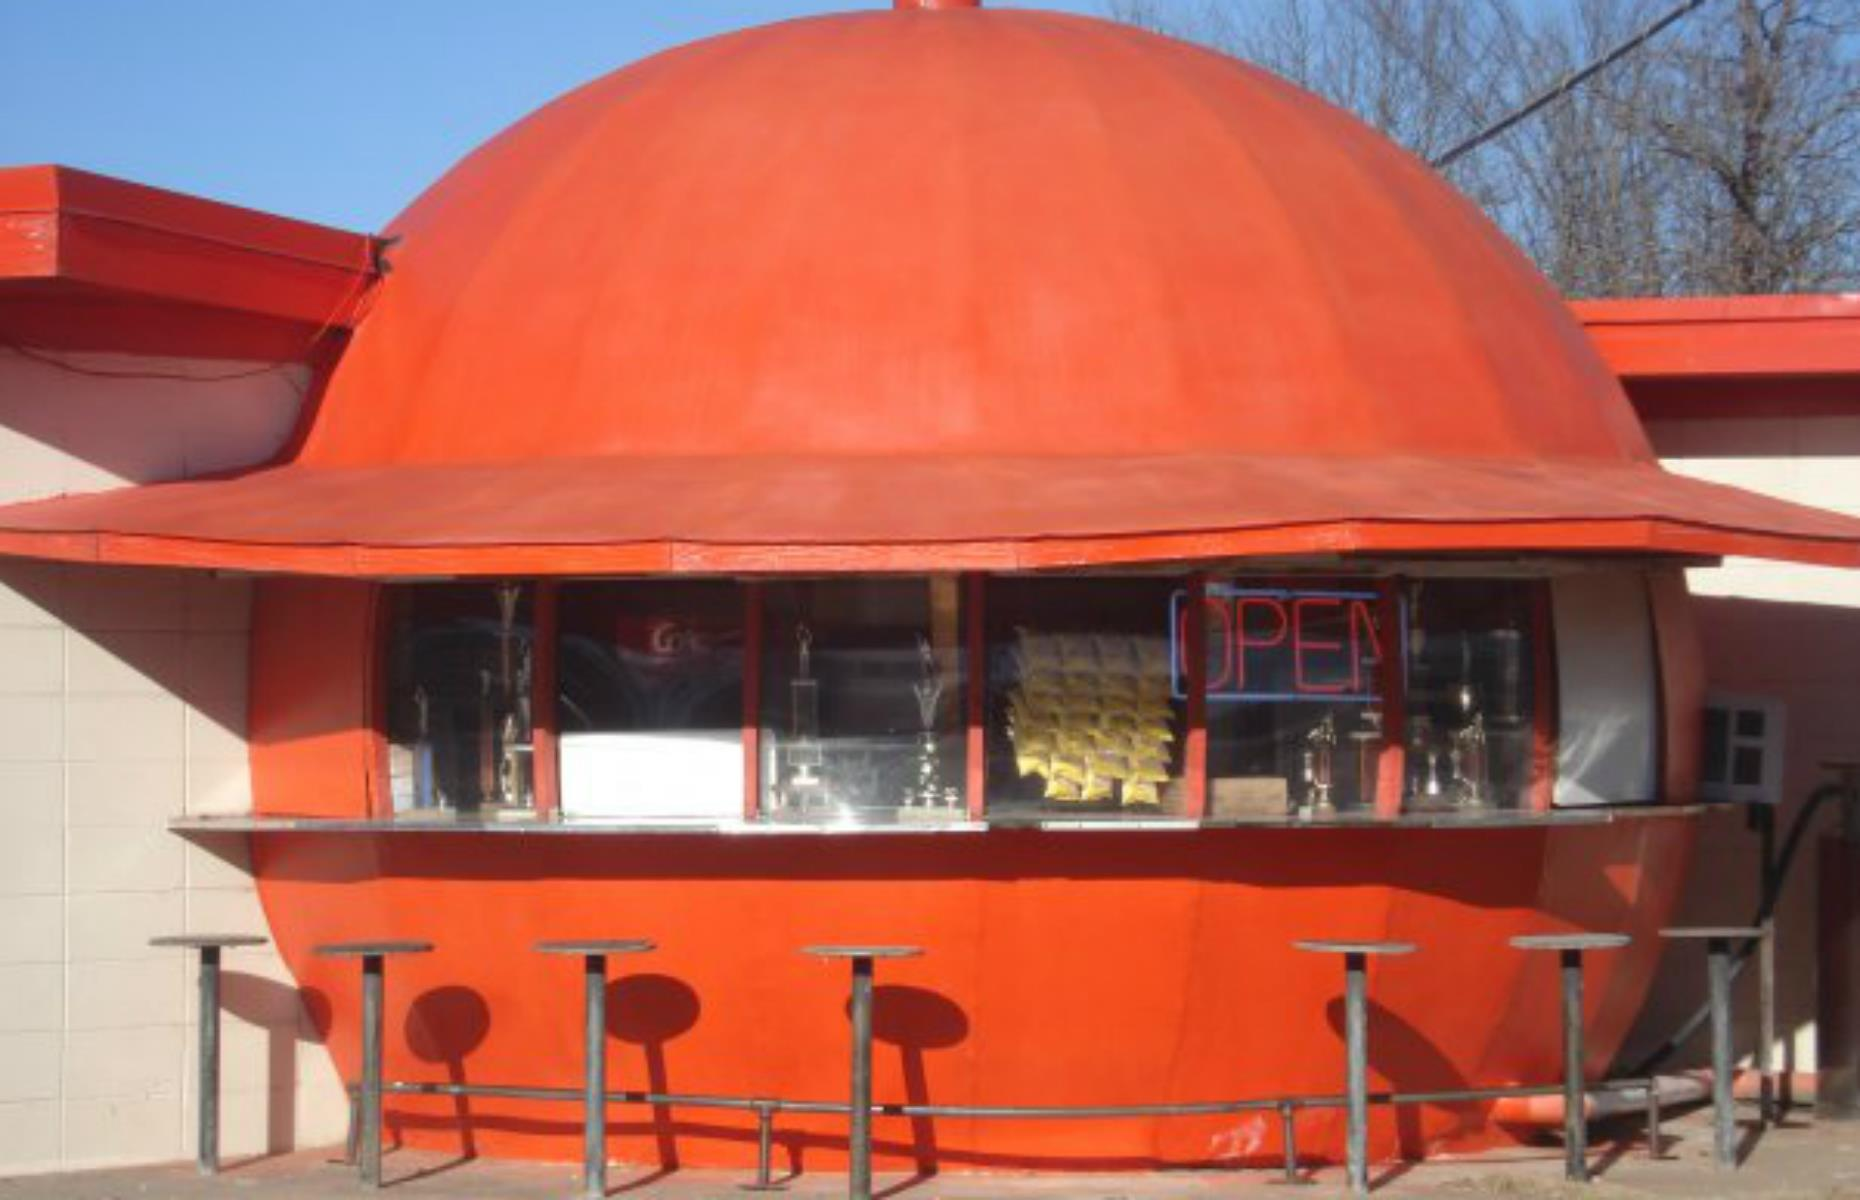 Slide 9 of 33: If a giant orange by the roadside doesn't seem strange enough, the fact that this is a burger restaurant – rather than a juice bar – makes this spot even more brilliantly bizarre. It's in Redfield, just off the road between Little Rock and Pine Bluff, and was built in 1966, inspired by a similar restaurant in Fresno, California. The hot dogs and hamburgers are highly rated.